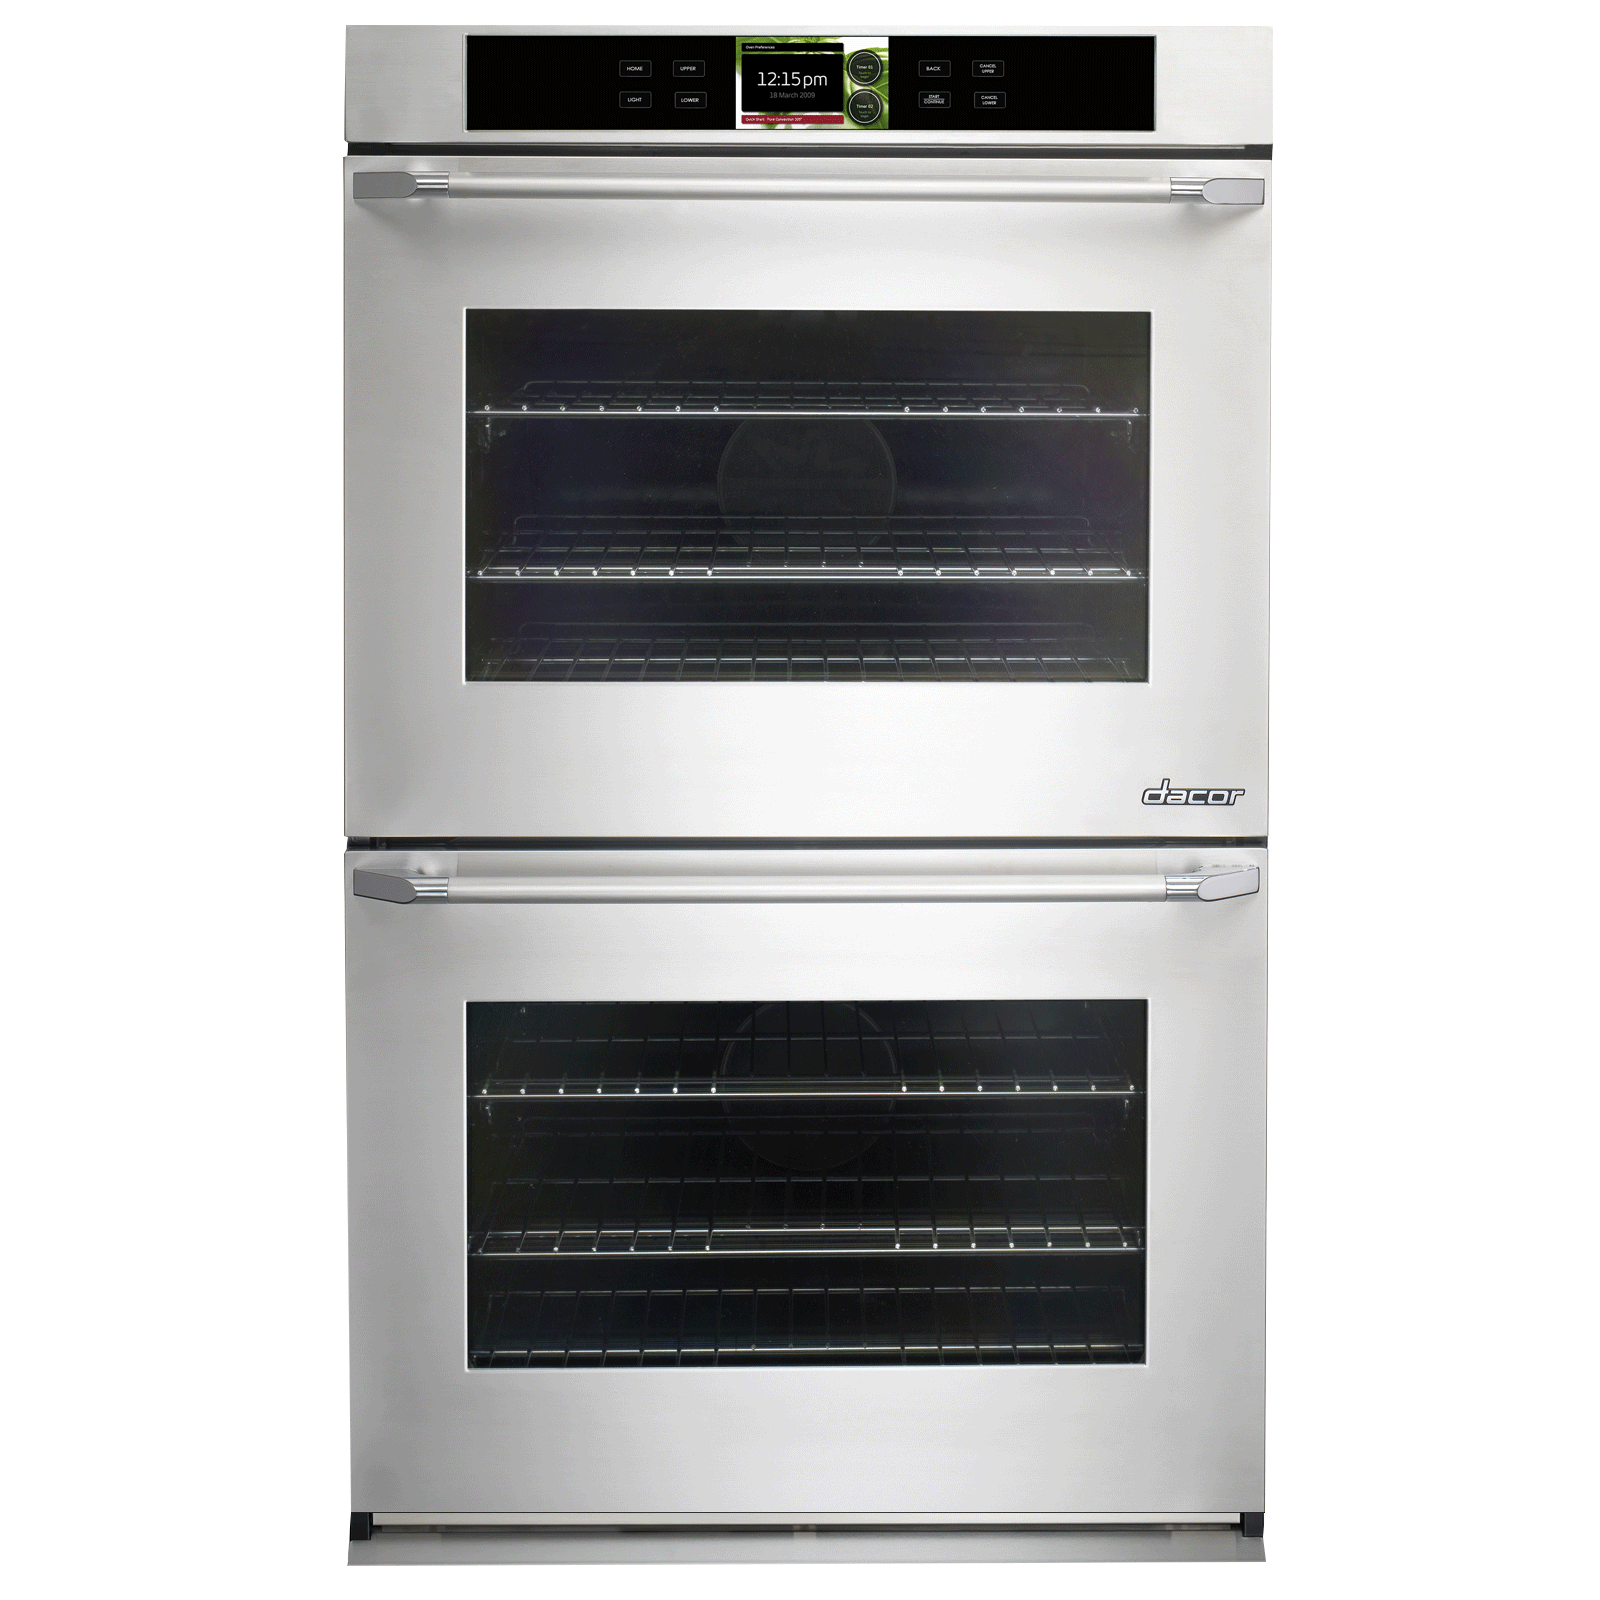 Microwave Clipart Convection Oven Microwave Convection